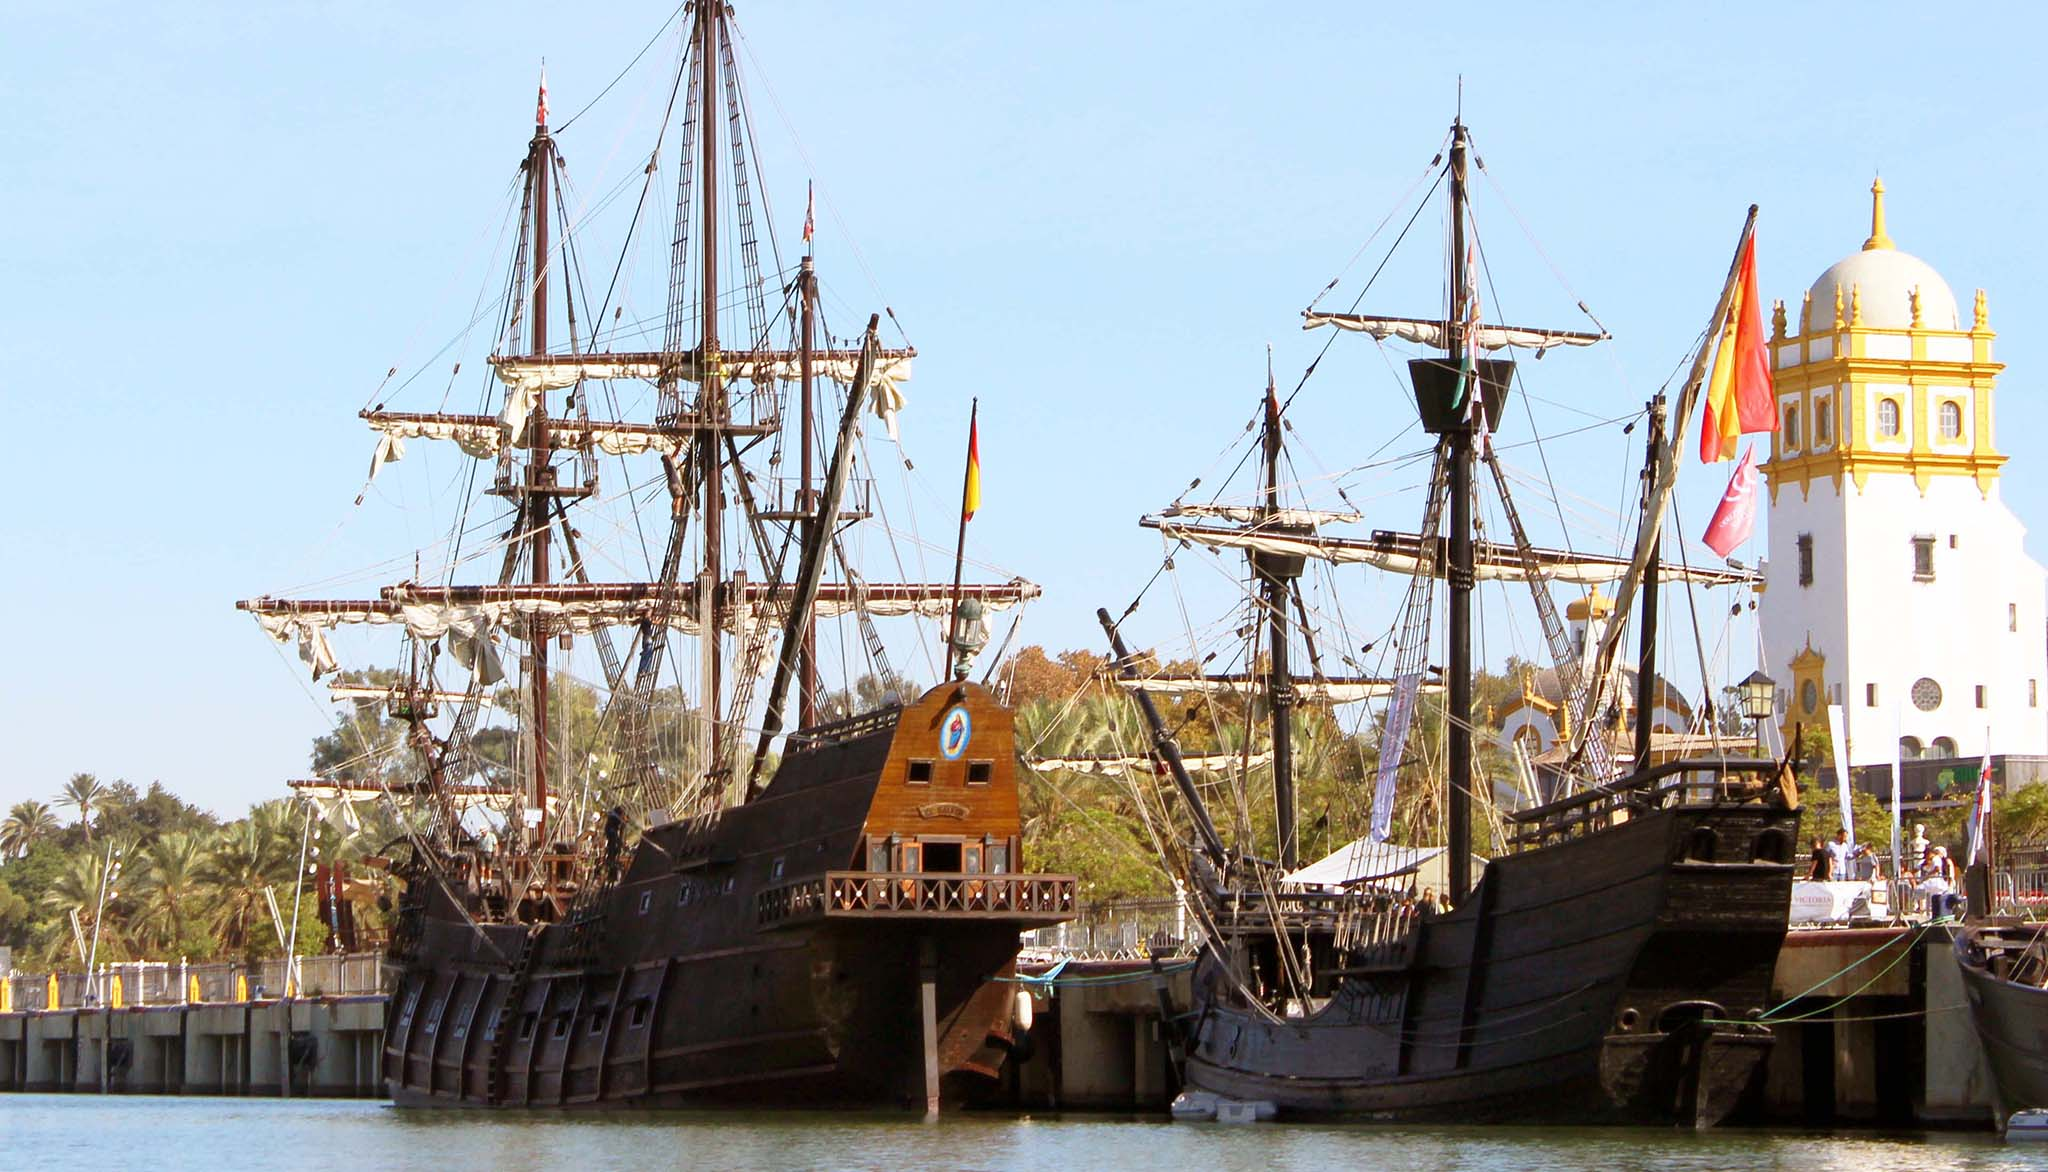 Nao Victoria and Galleon Andalusia